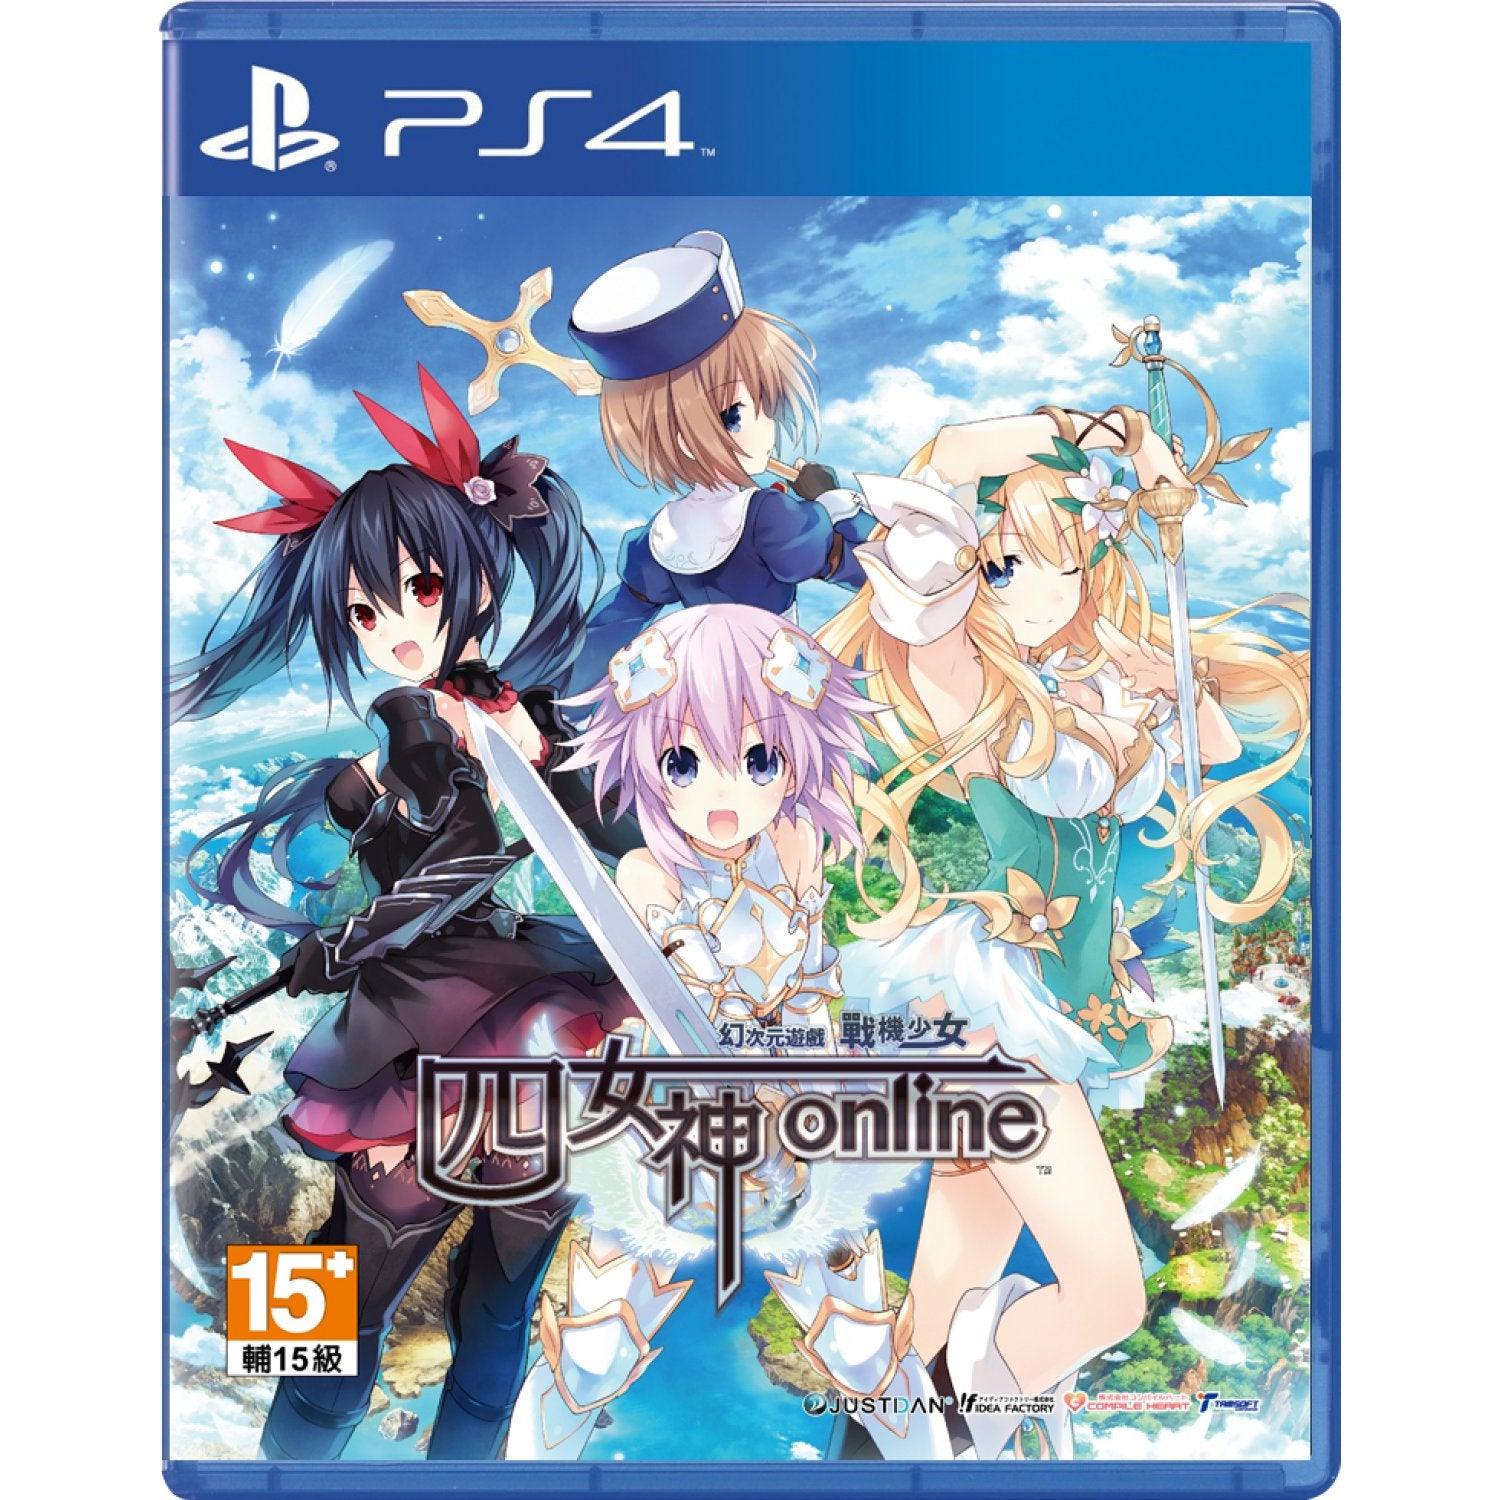 PS4 Cyberdimension Neptunia: 4 Goddesses Online (Chinese)